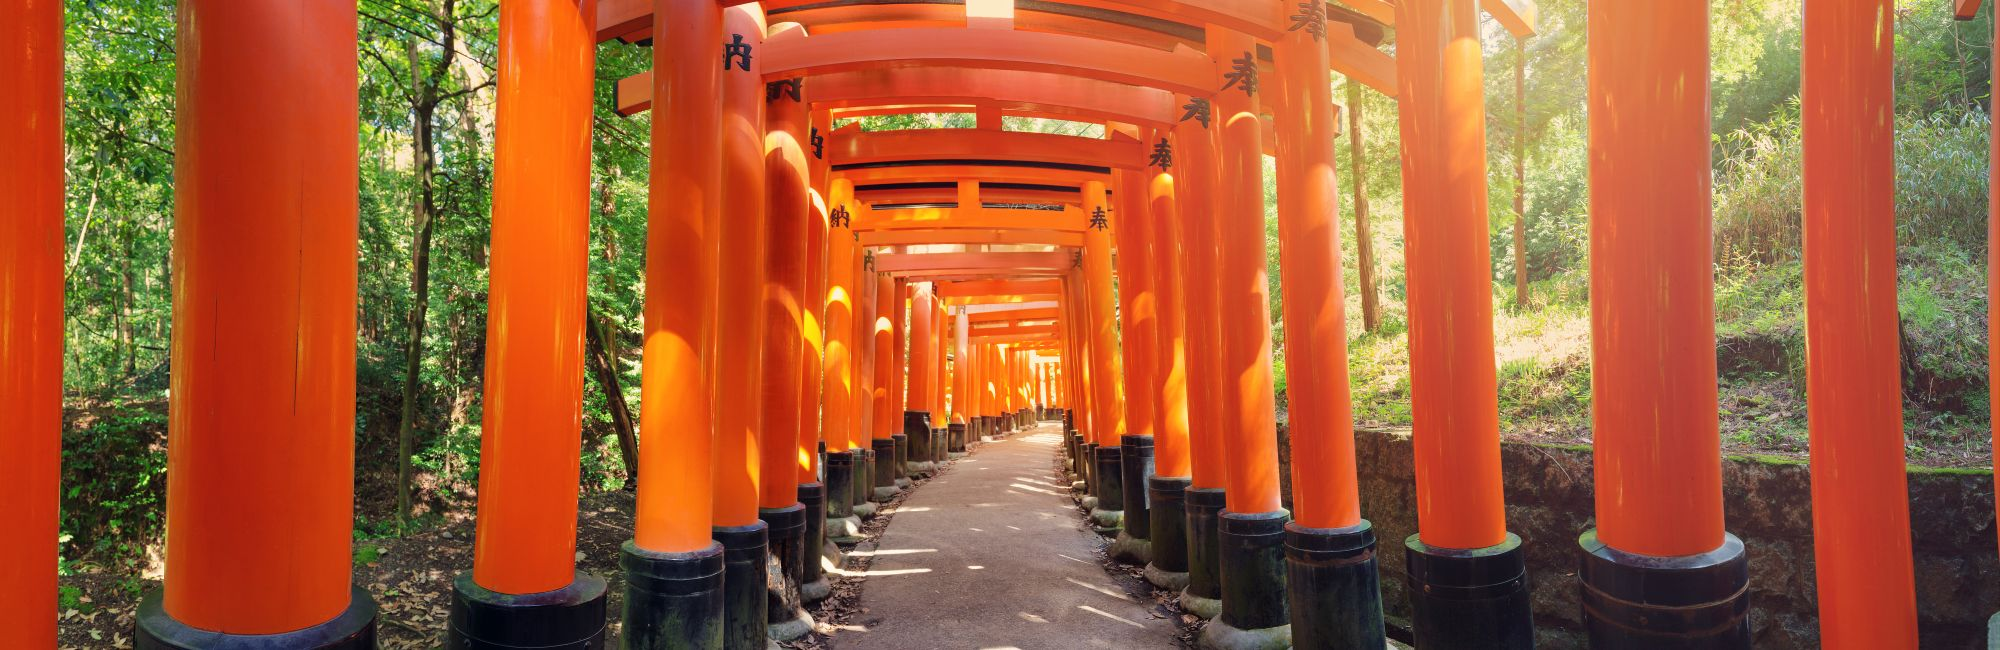 Japan Kyoto Fushimi Inari Shrine Torii gates